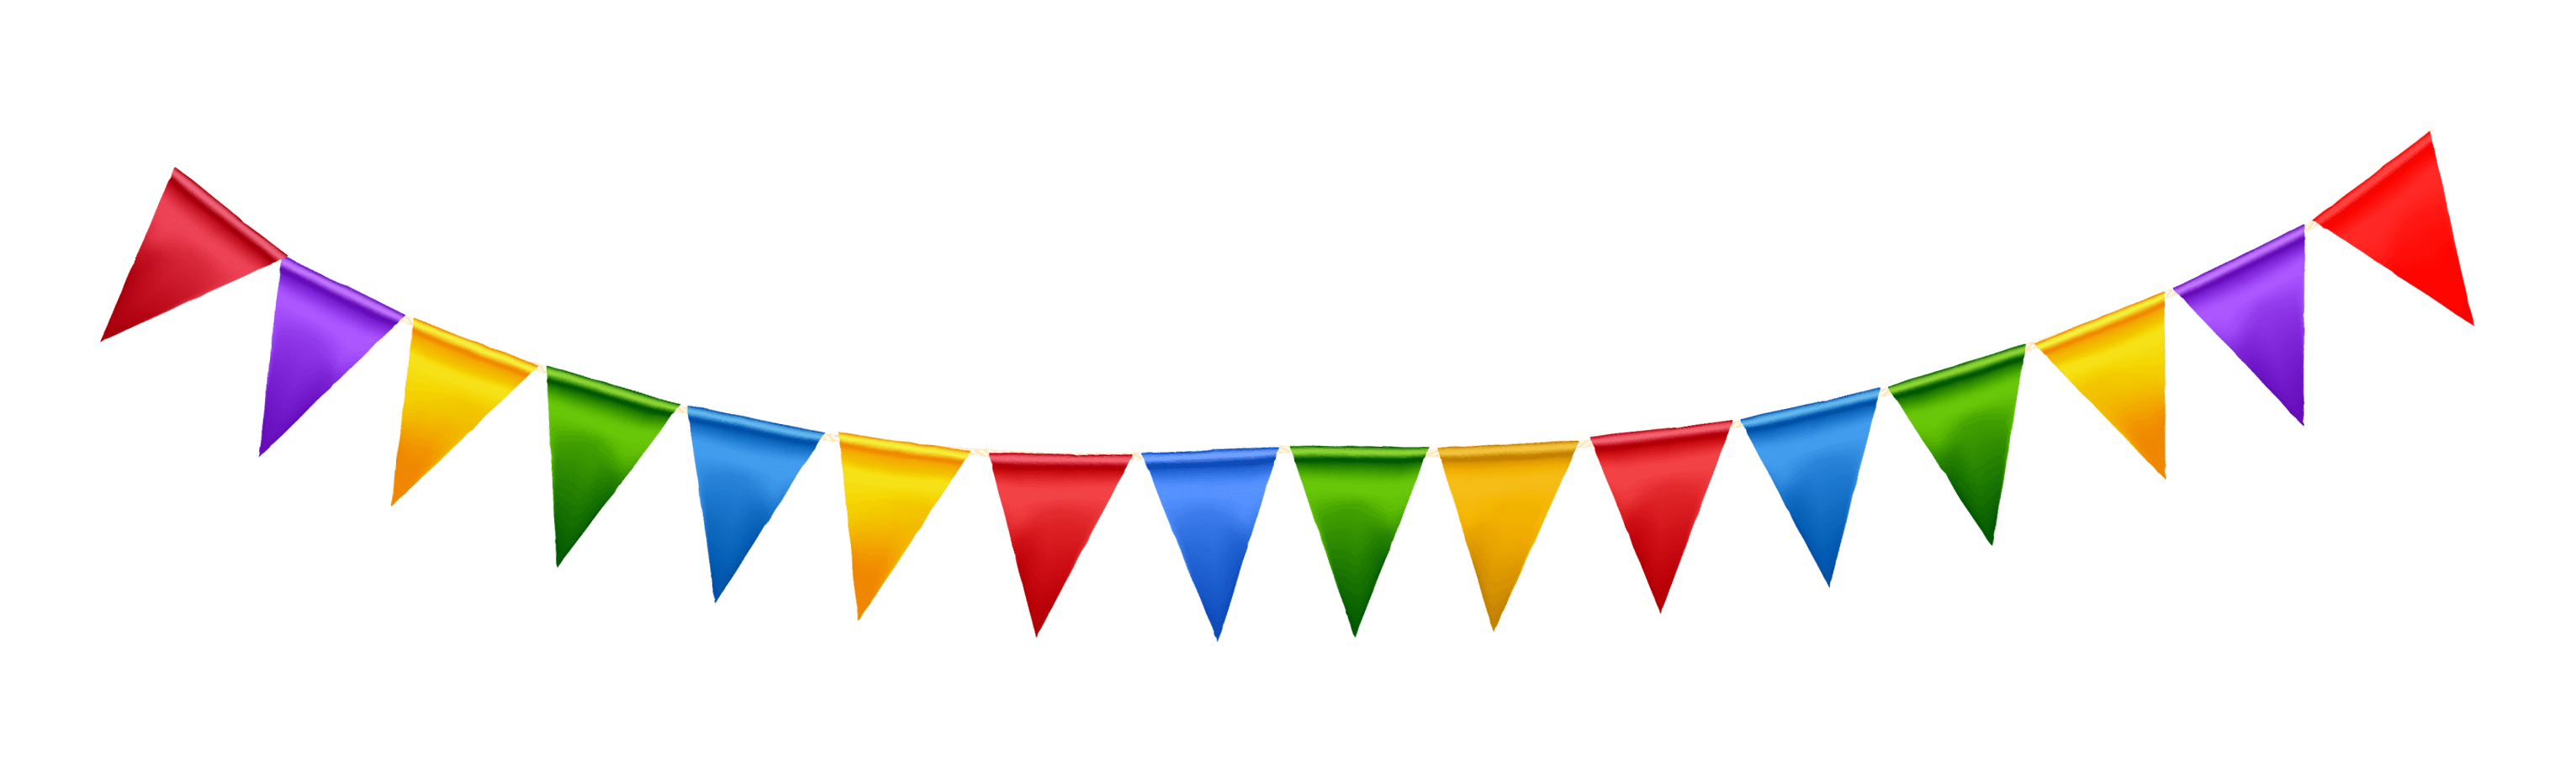 Streamers clipart party banner. Free cliparts download clip